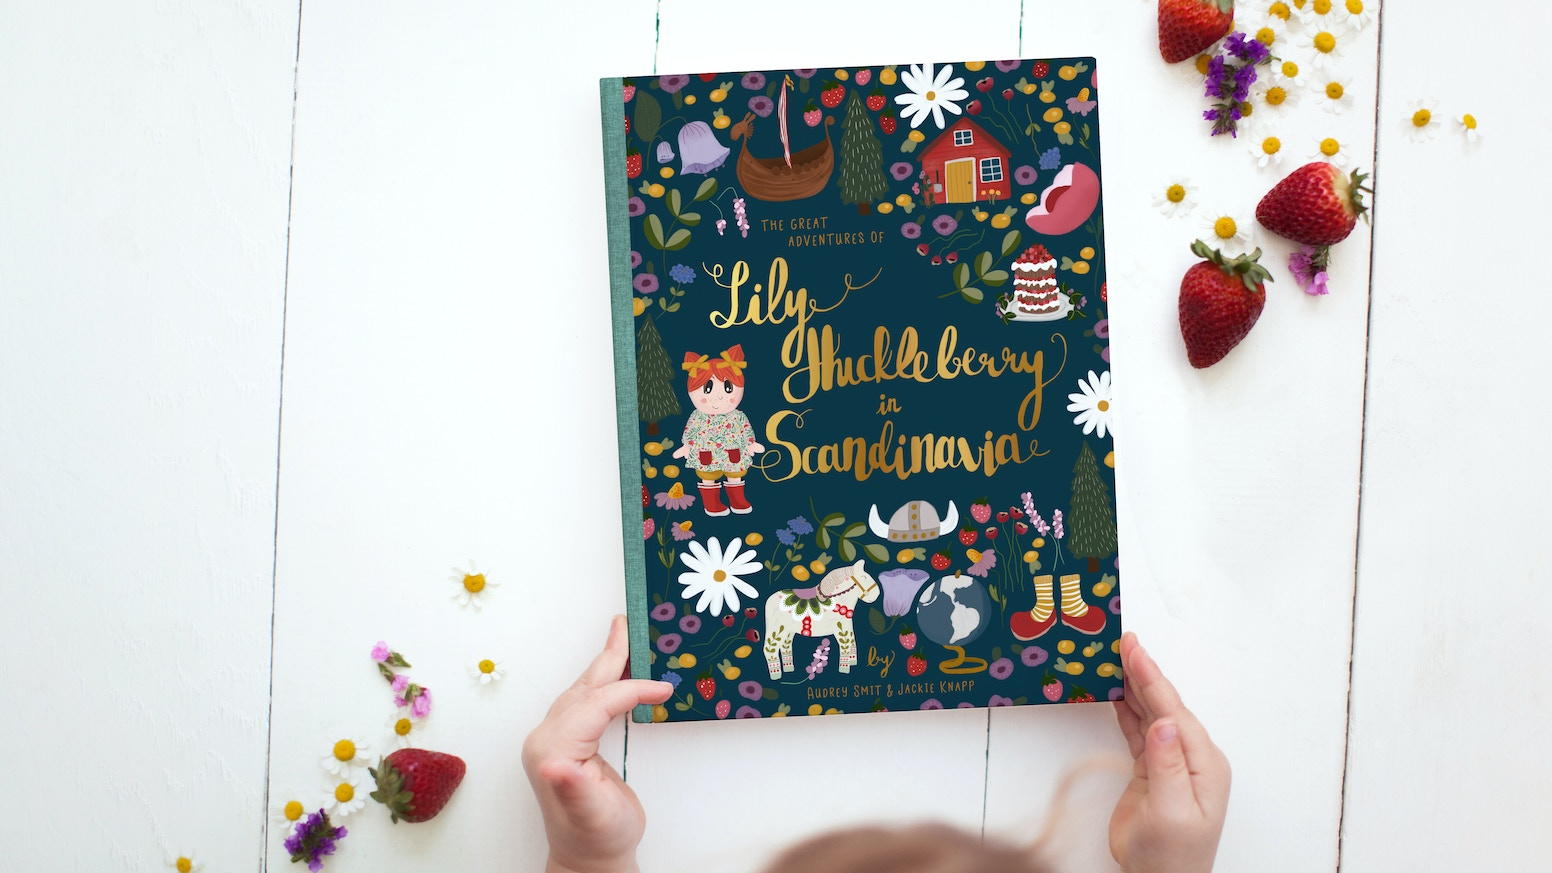 the adventures of lily huckleberry travel books for kids by this